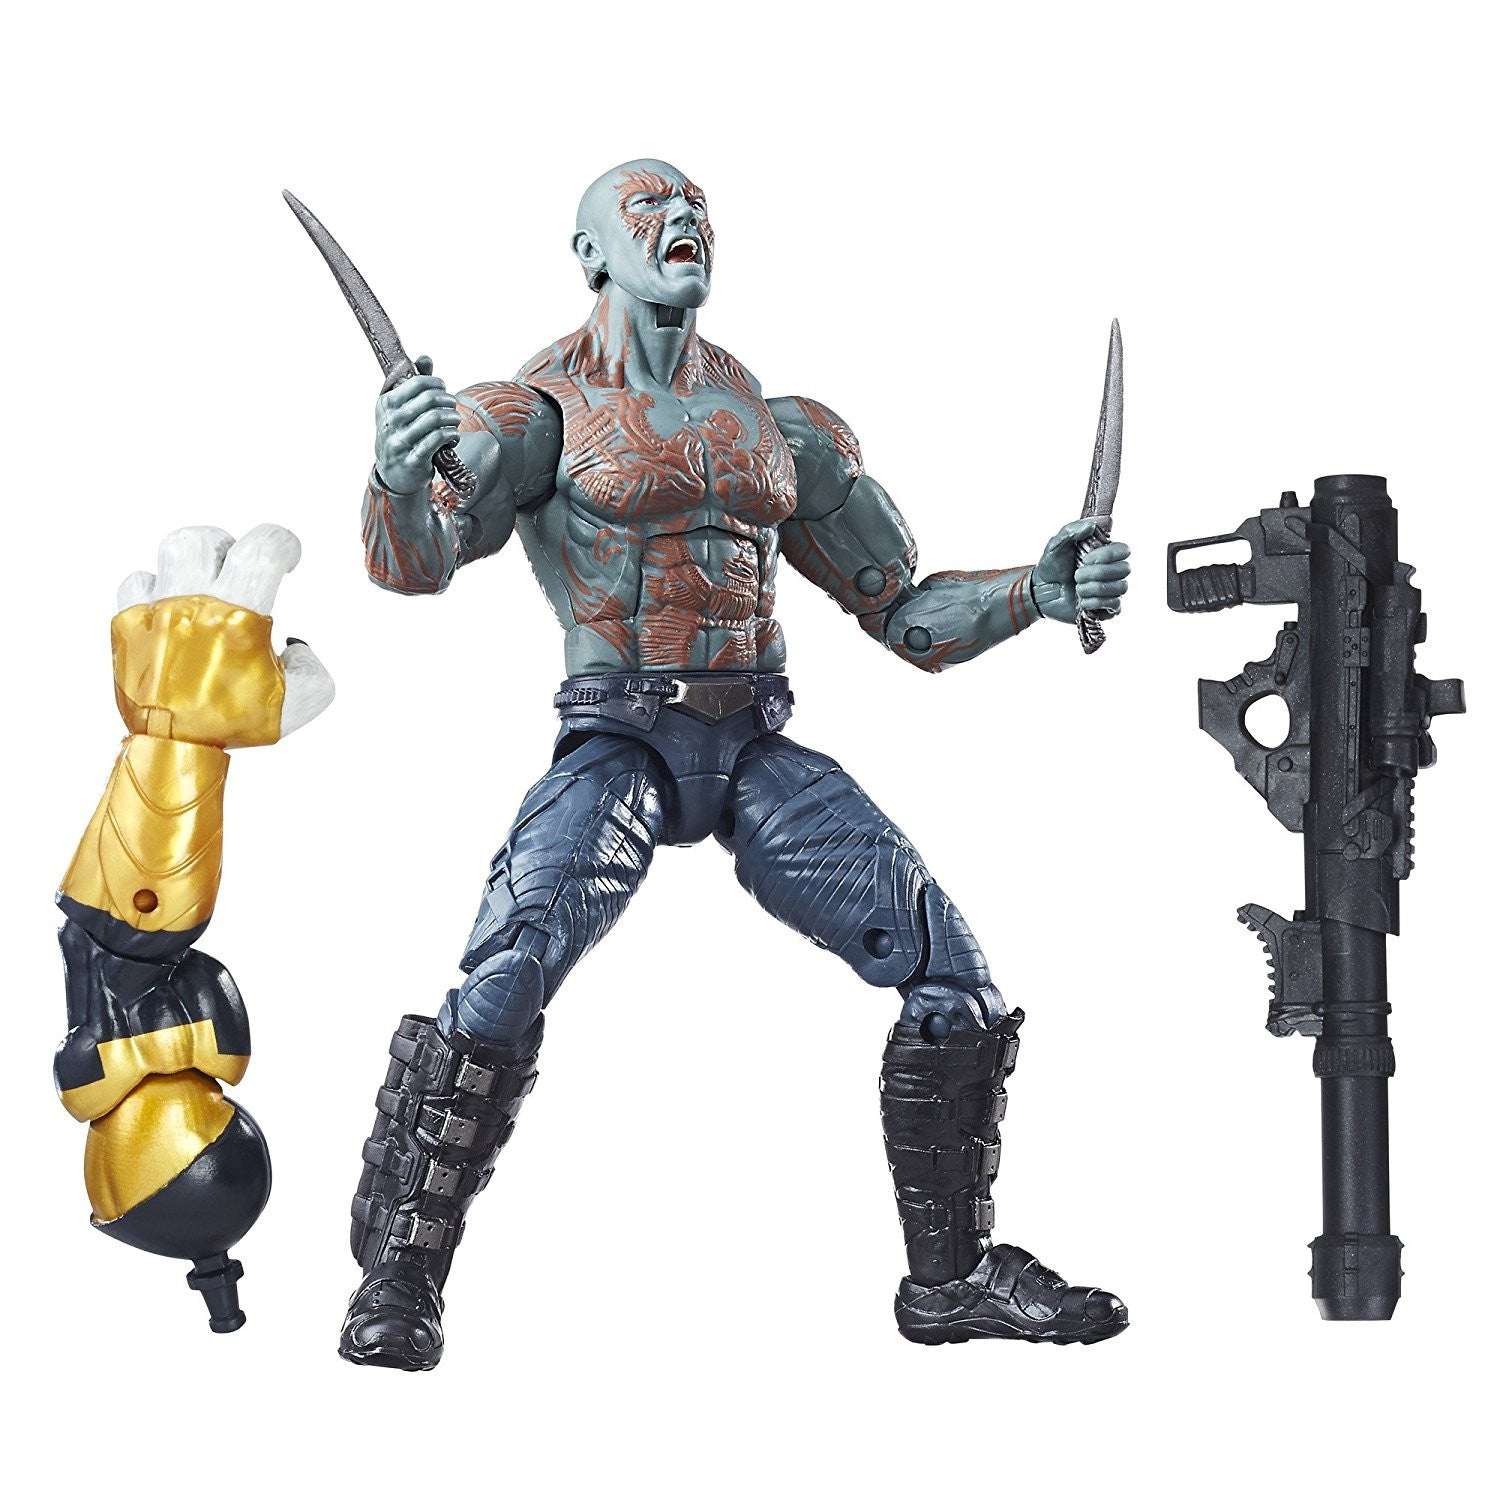 Marvel Legends - Marvel's Titus BAF - Guardians of the Galaxy Vol. 2 - Drax Action Figure (C0618)